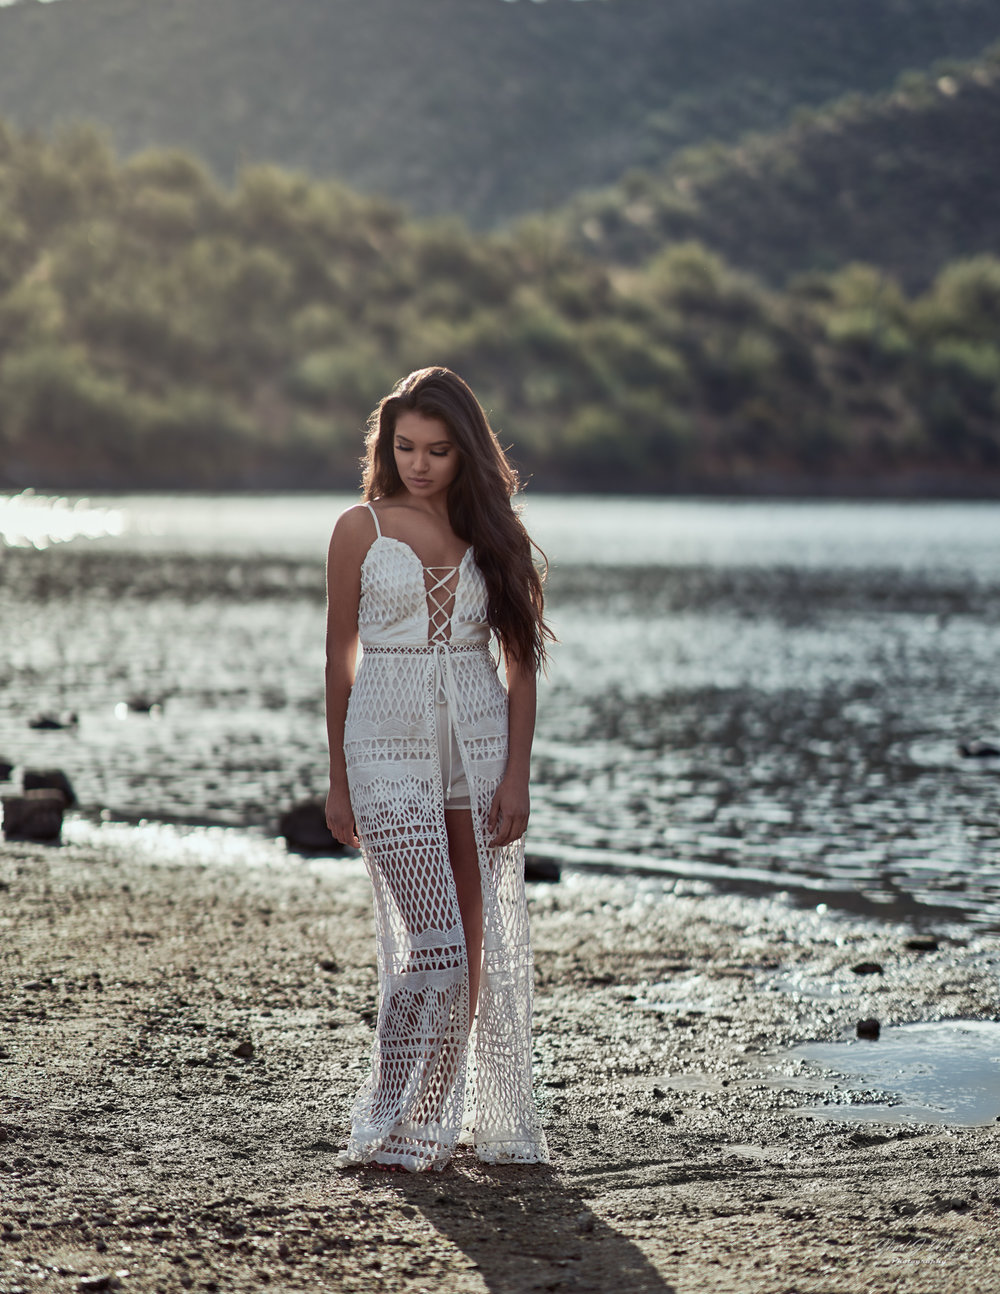 Zari Fashion Shoot at Saguaro Lake Beach by Arizona Portrait Photographer Chad Weed